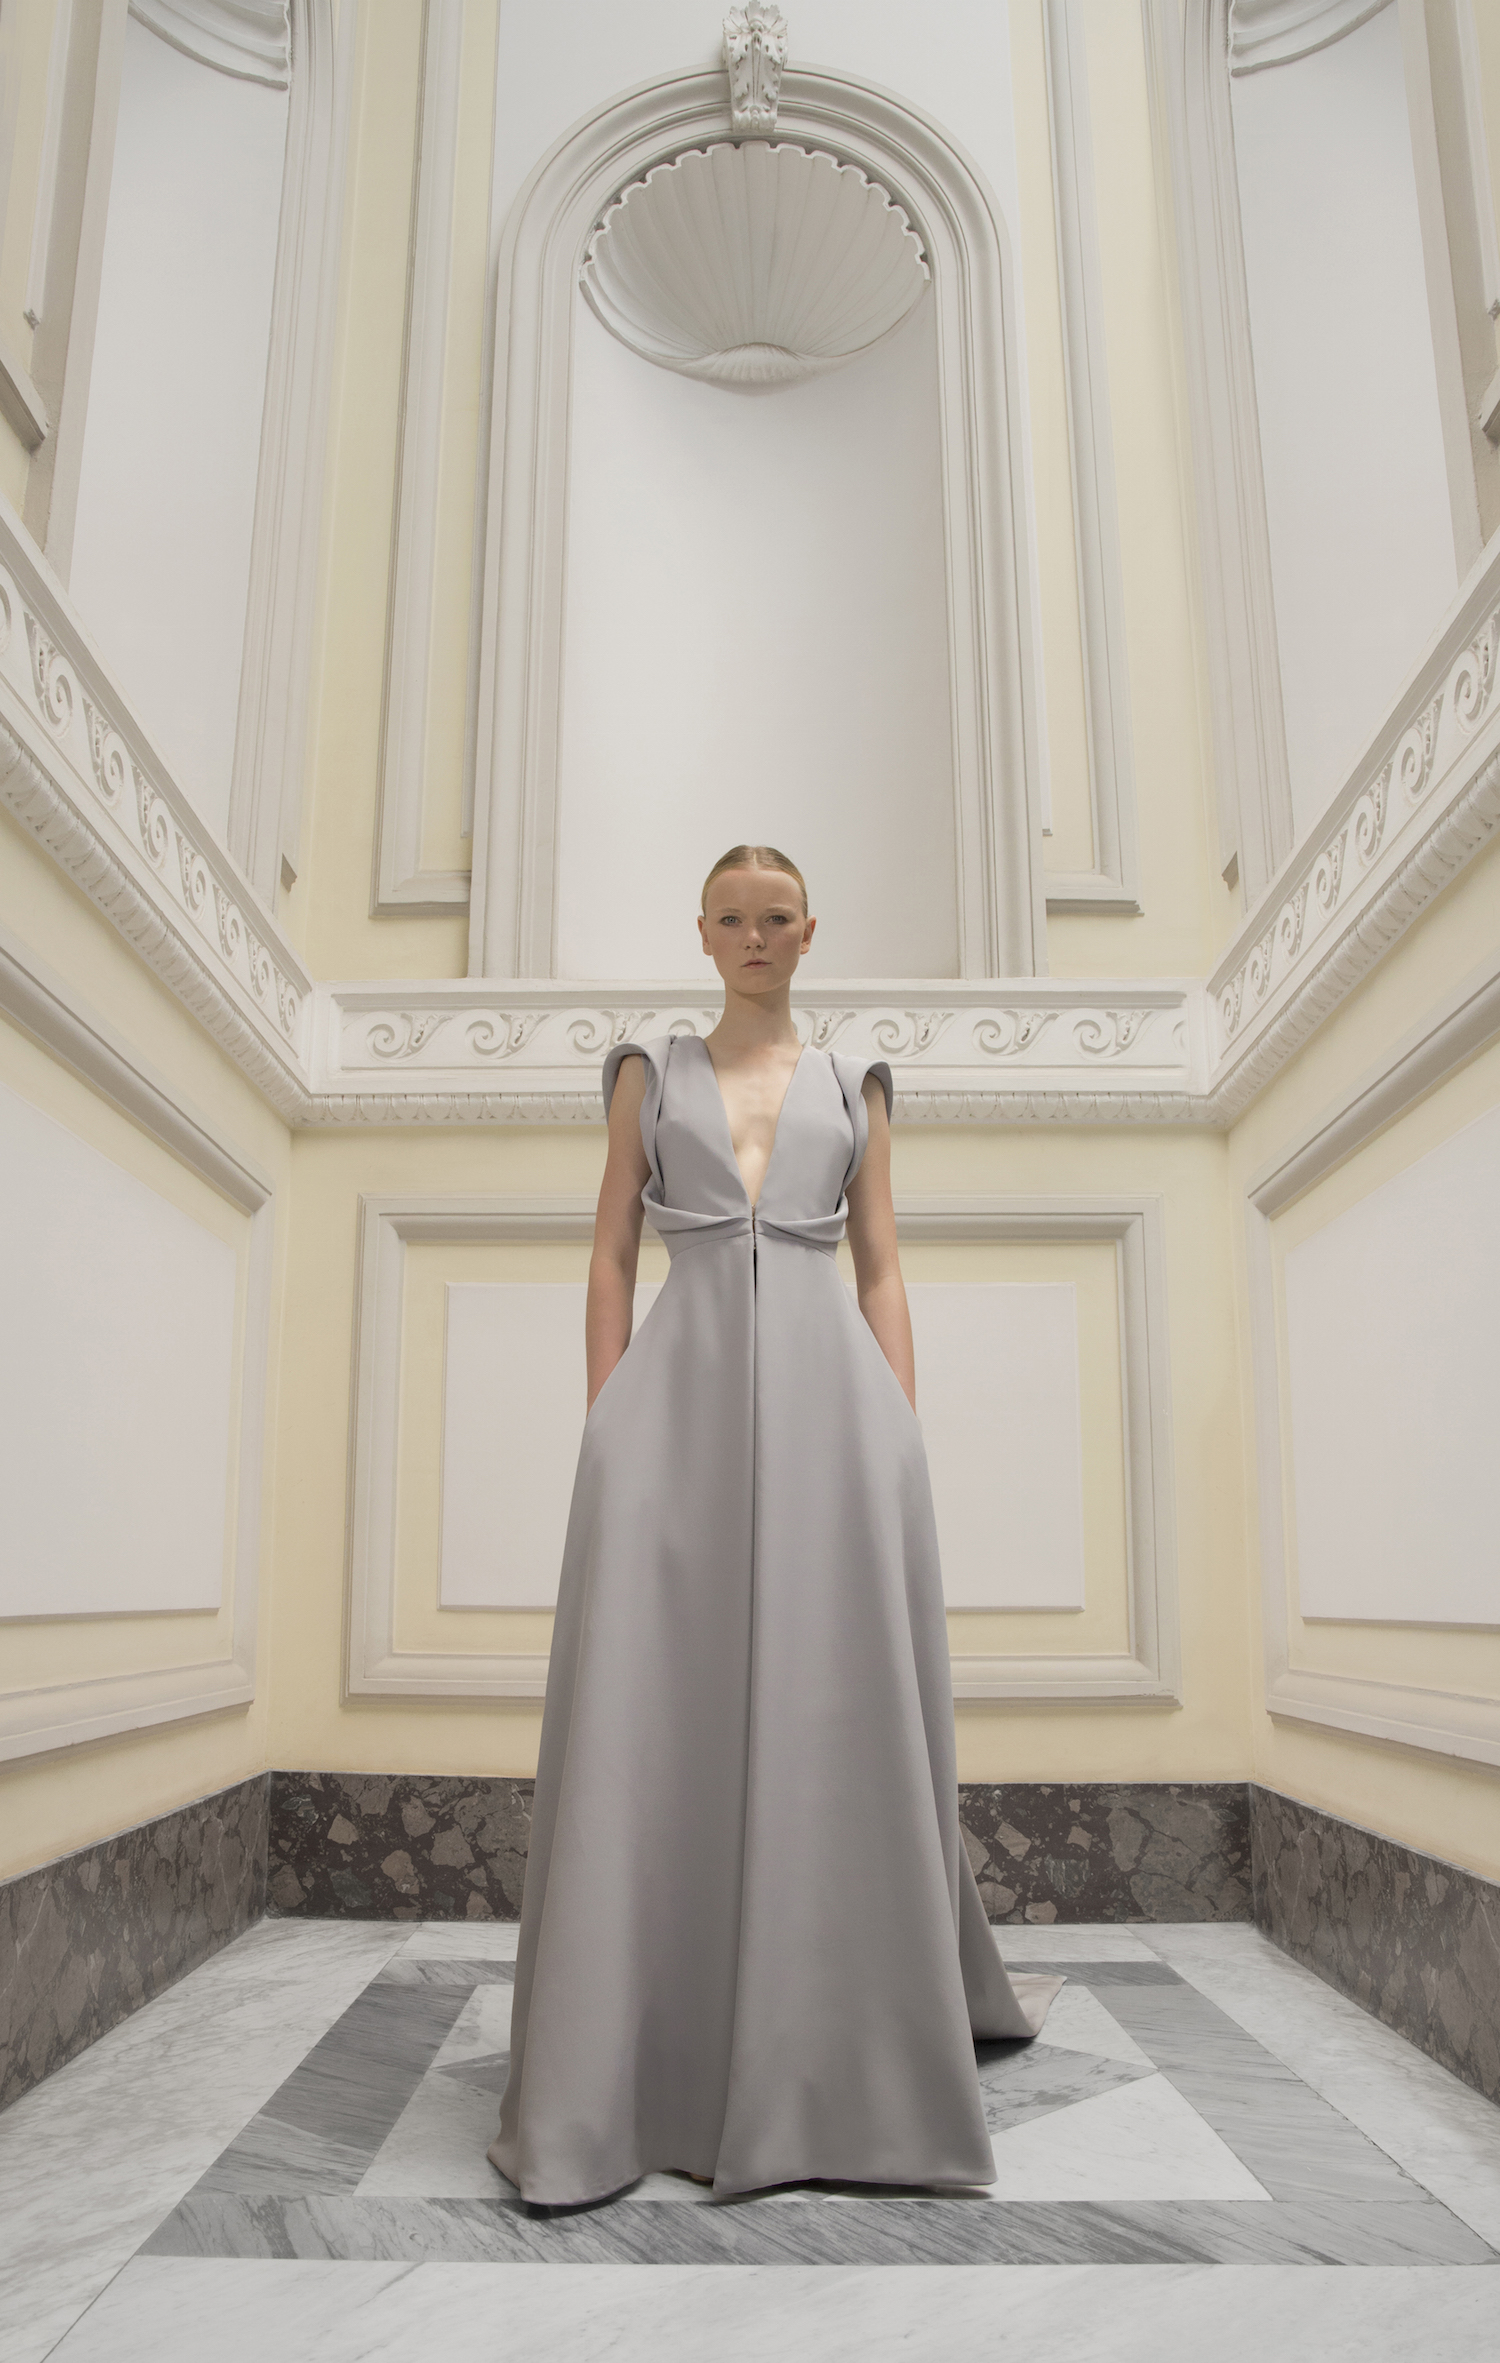 ANTONI GRIMALDI COUTURE - Fall Winter 2016/17